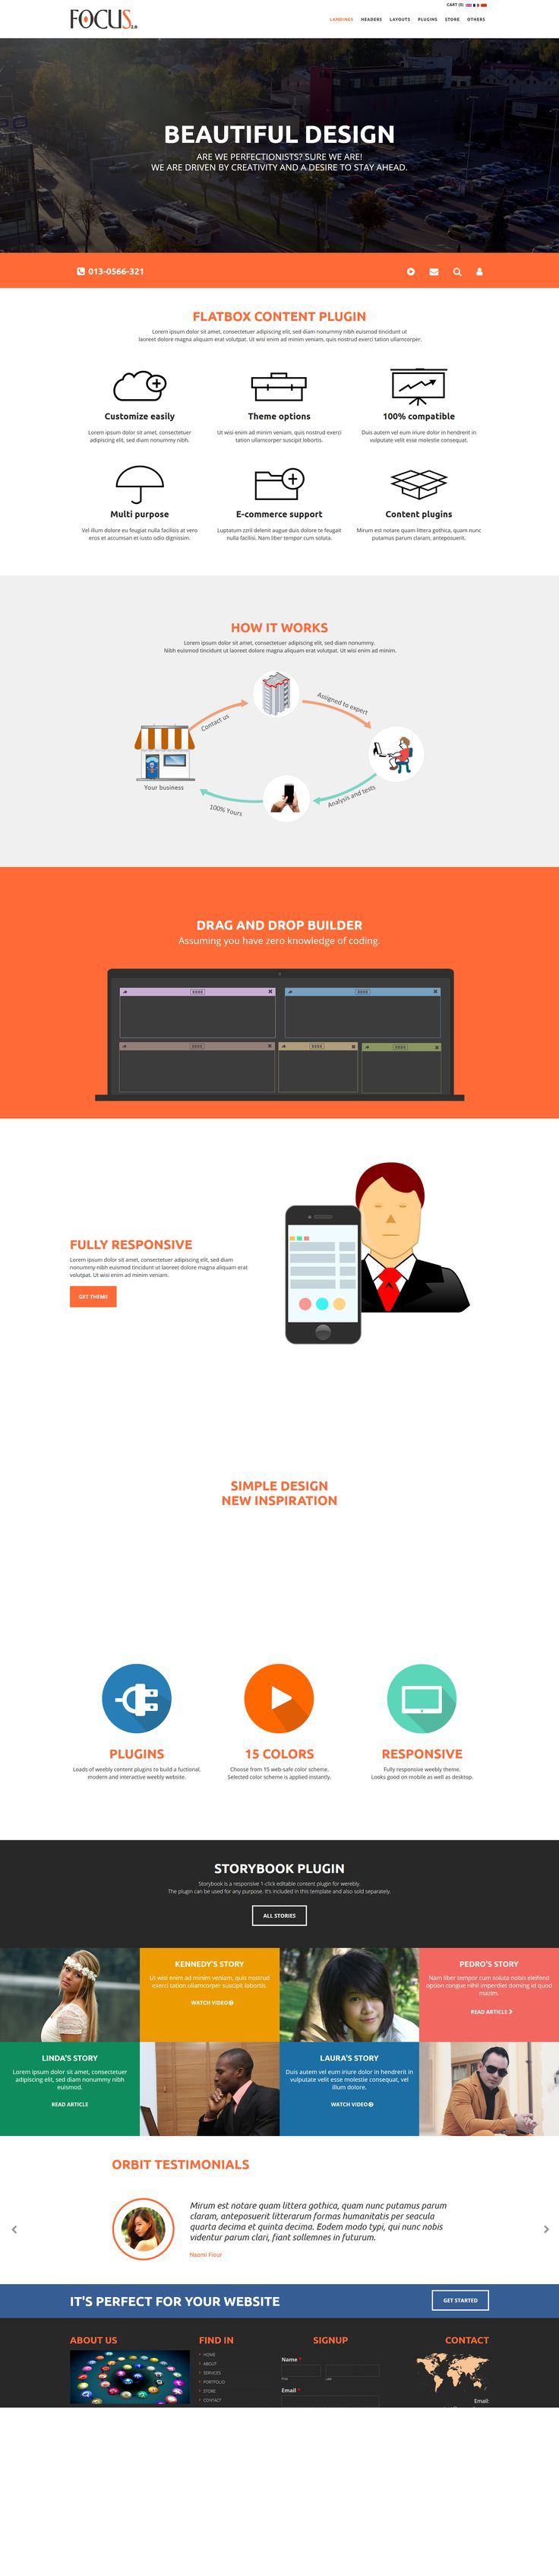 Colors for professional website - Focus Professional Weebly Website Theme Modern Interactive Template For Websites